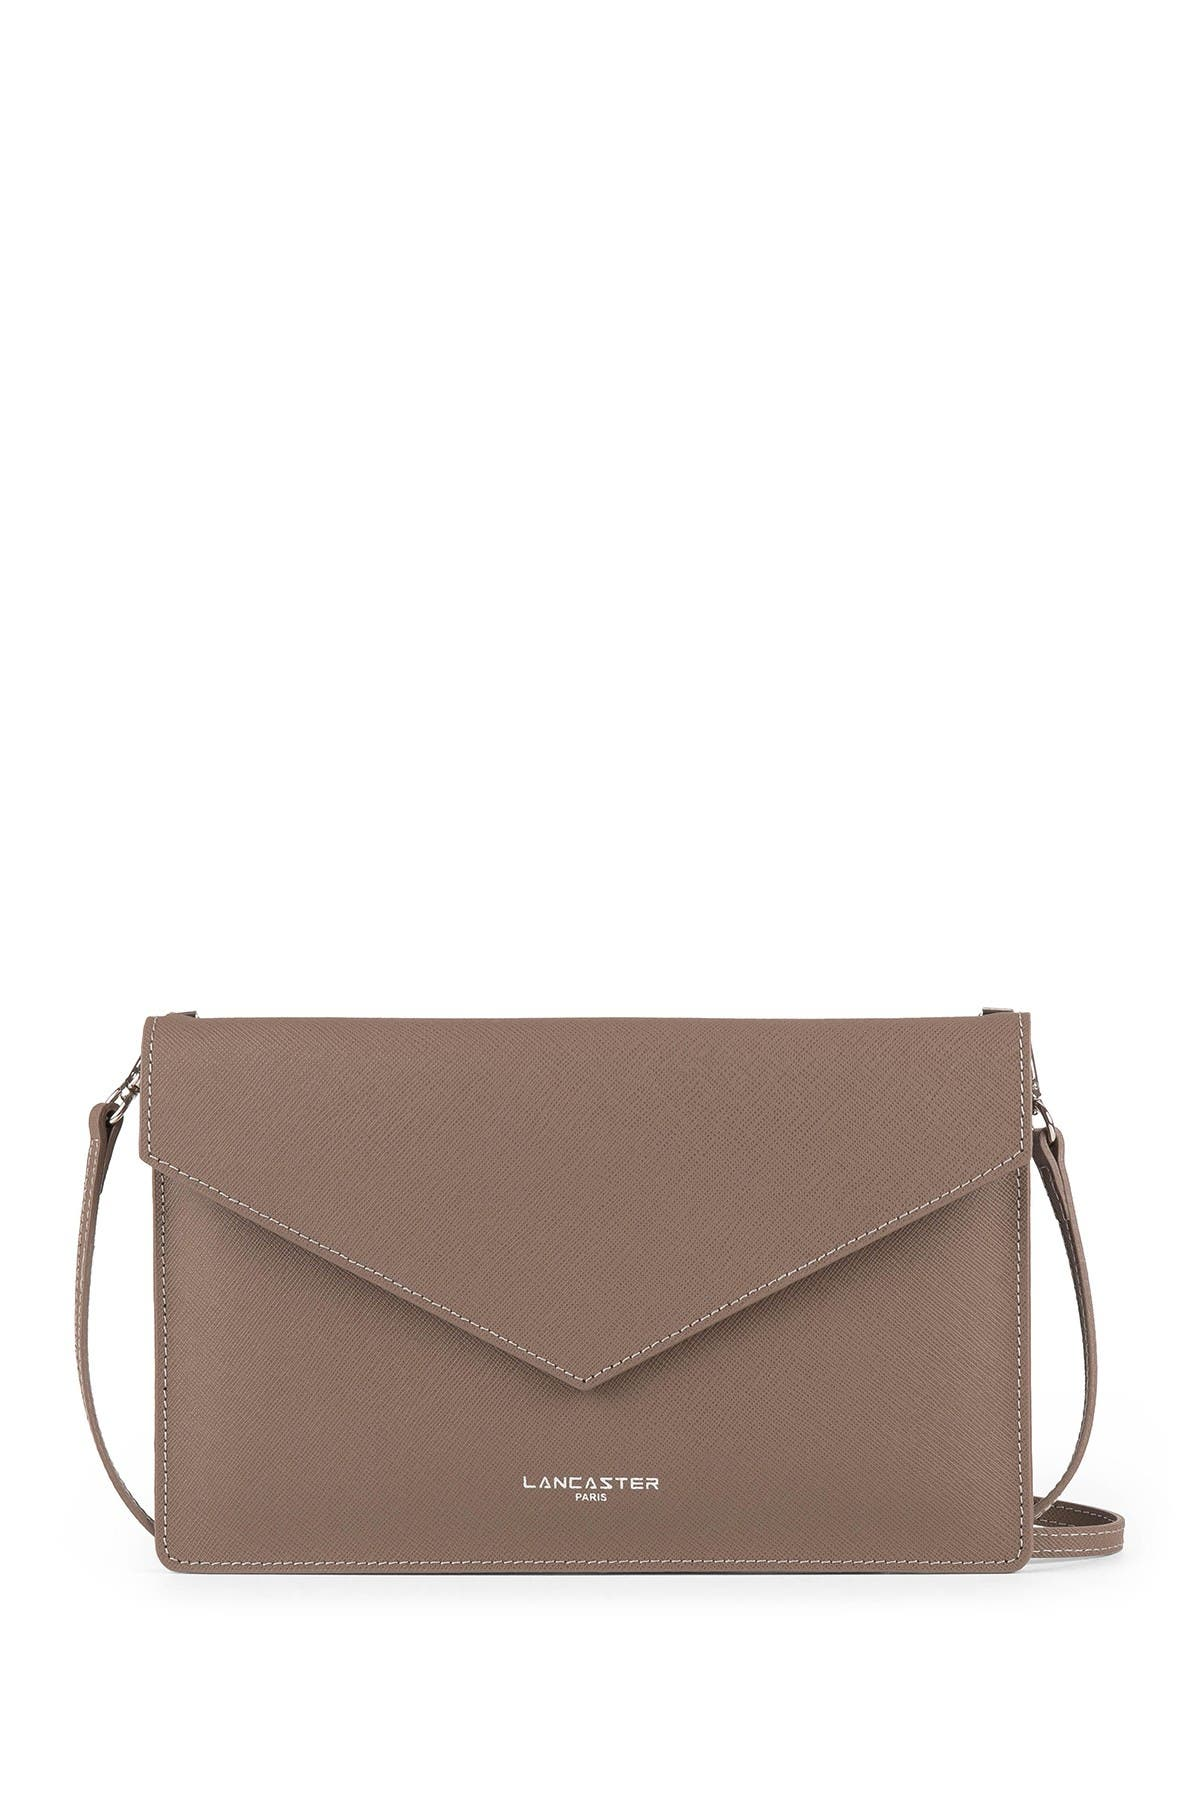 Image of Lancaster Paris Element Saffiano Leather Clutch